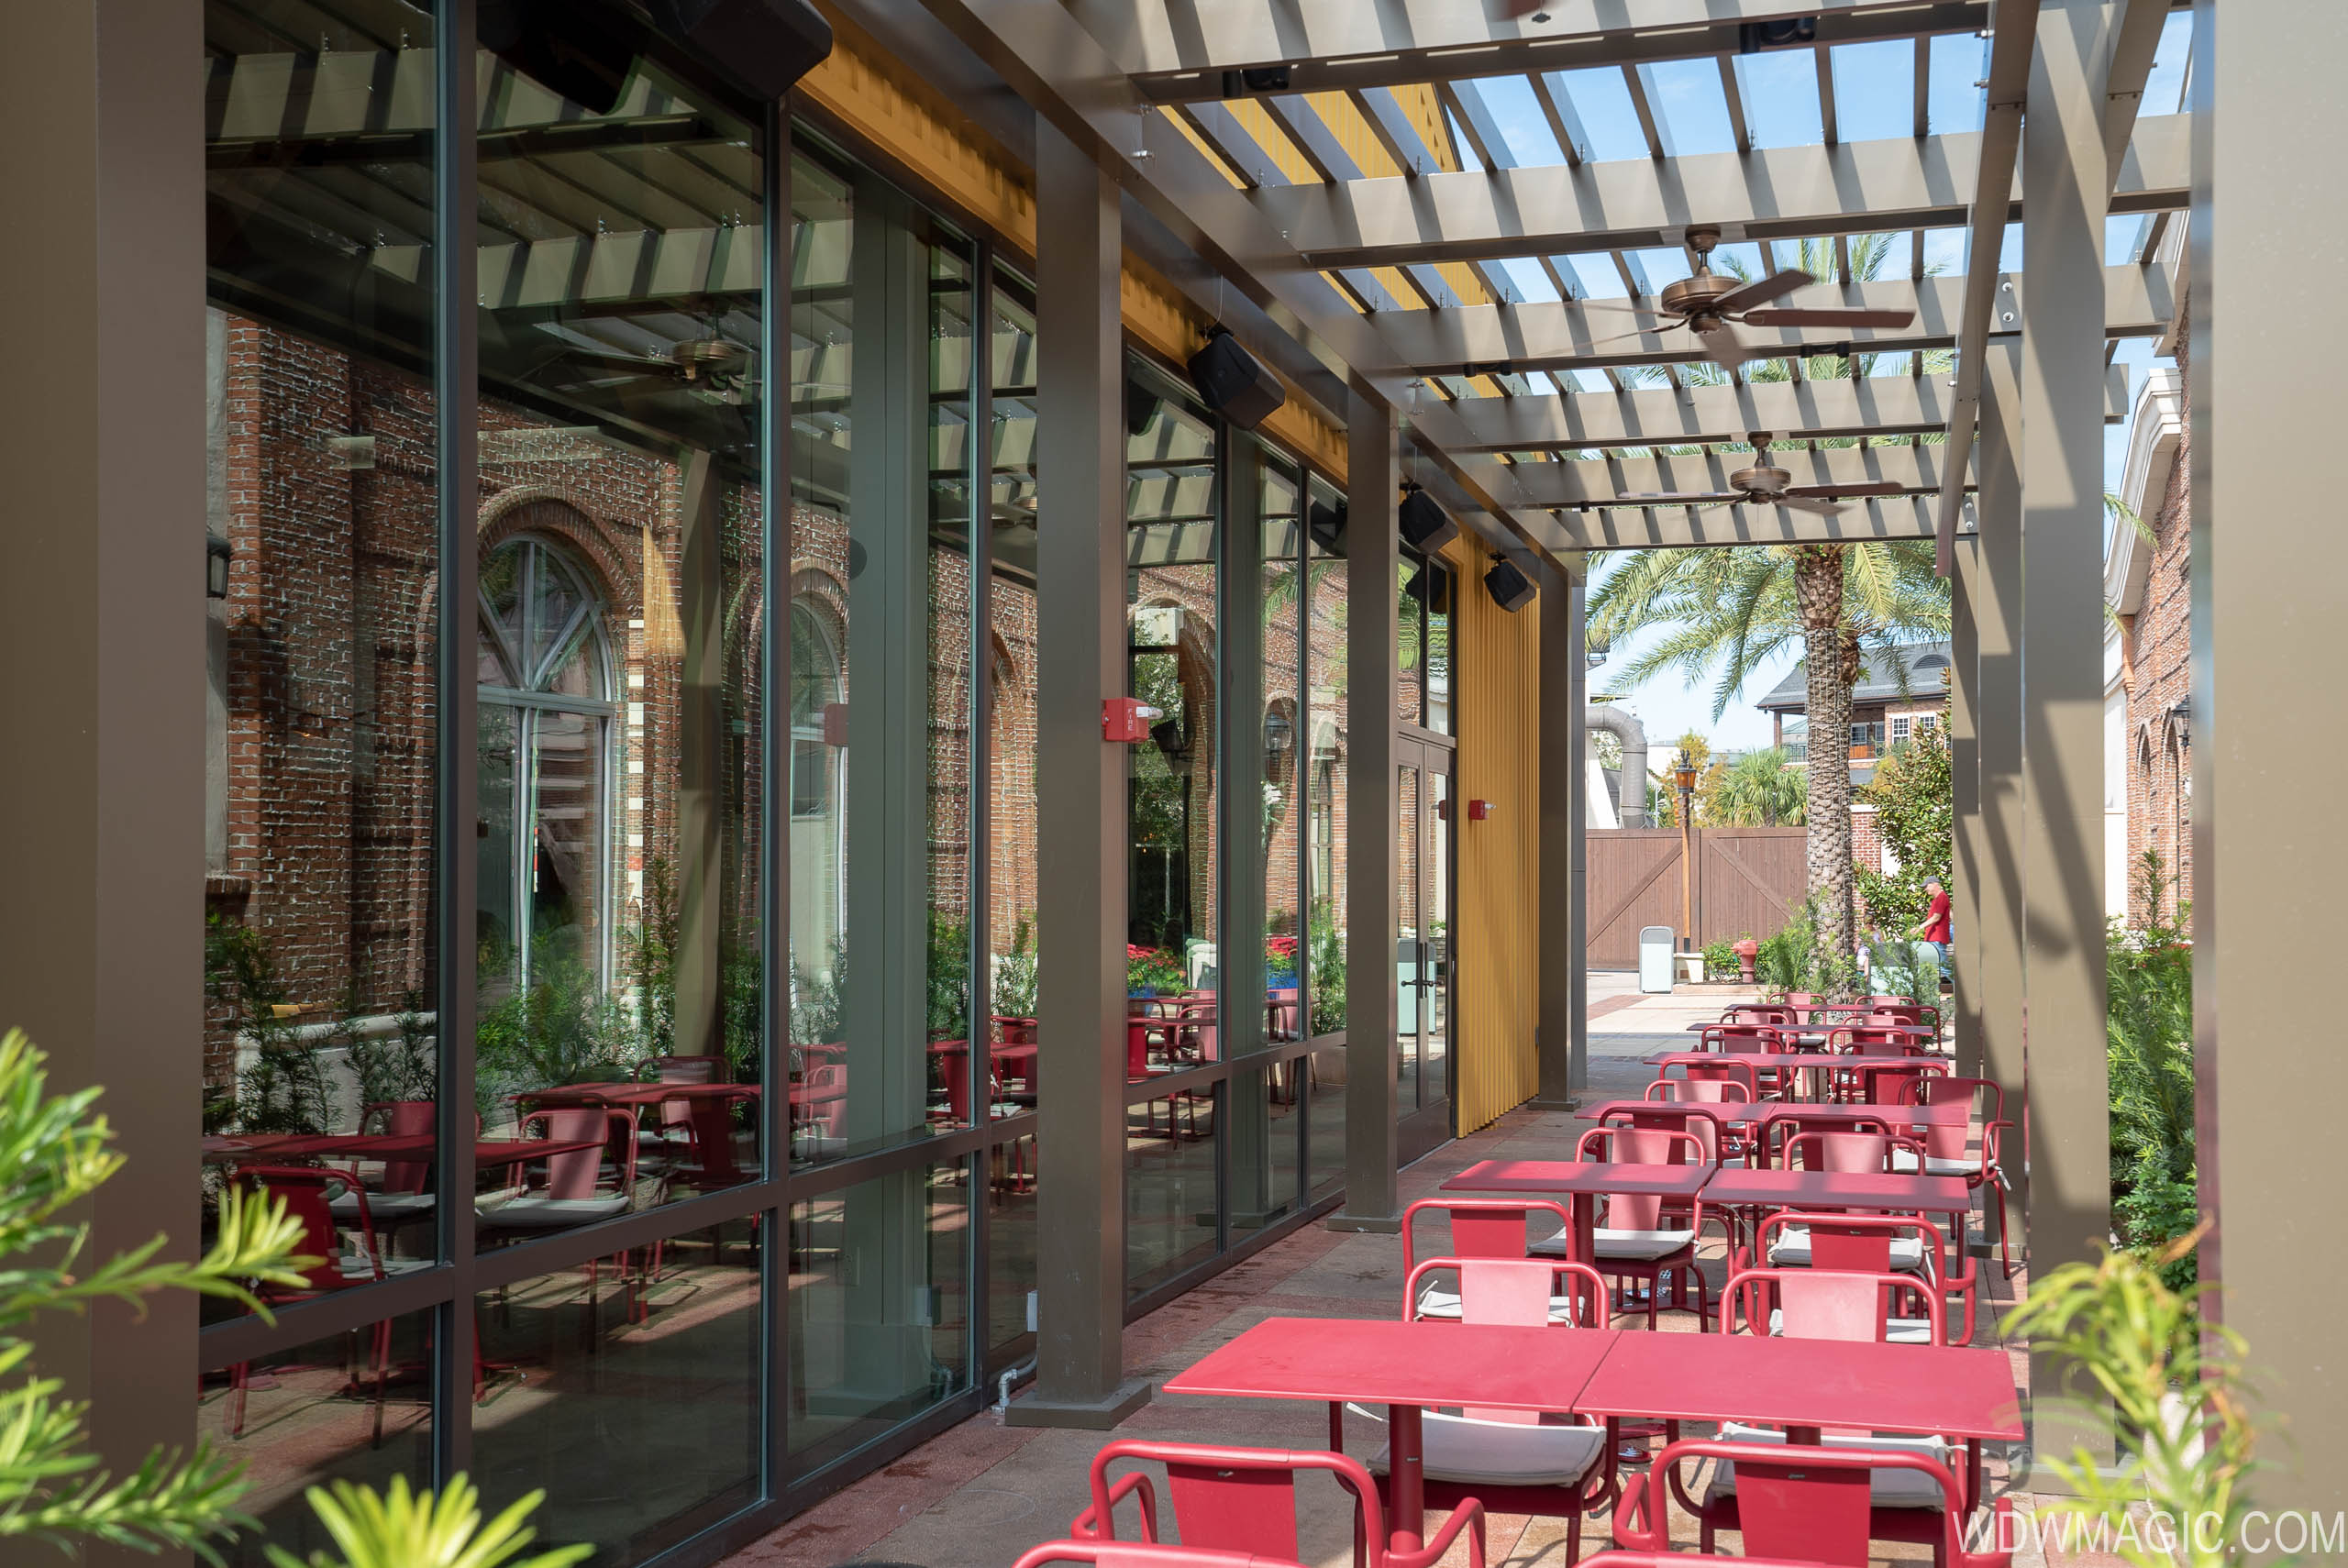 Wolfgang Puck Bar and Grill outdoor patio seating